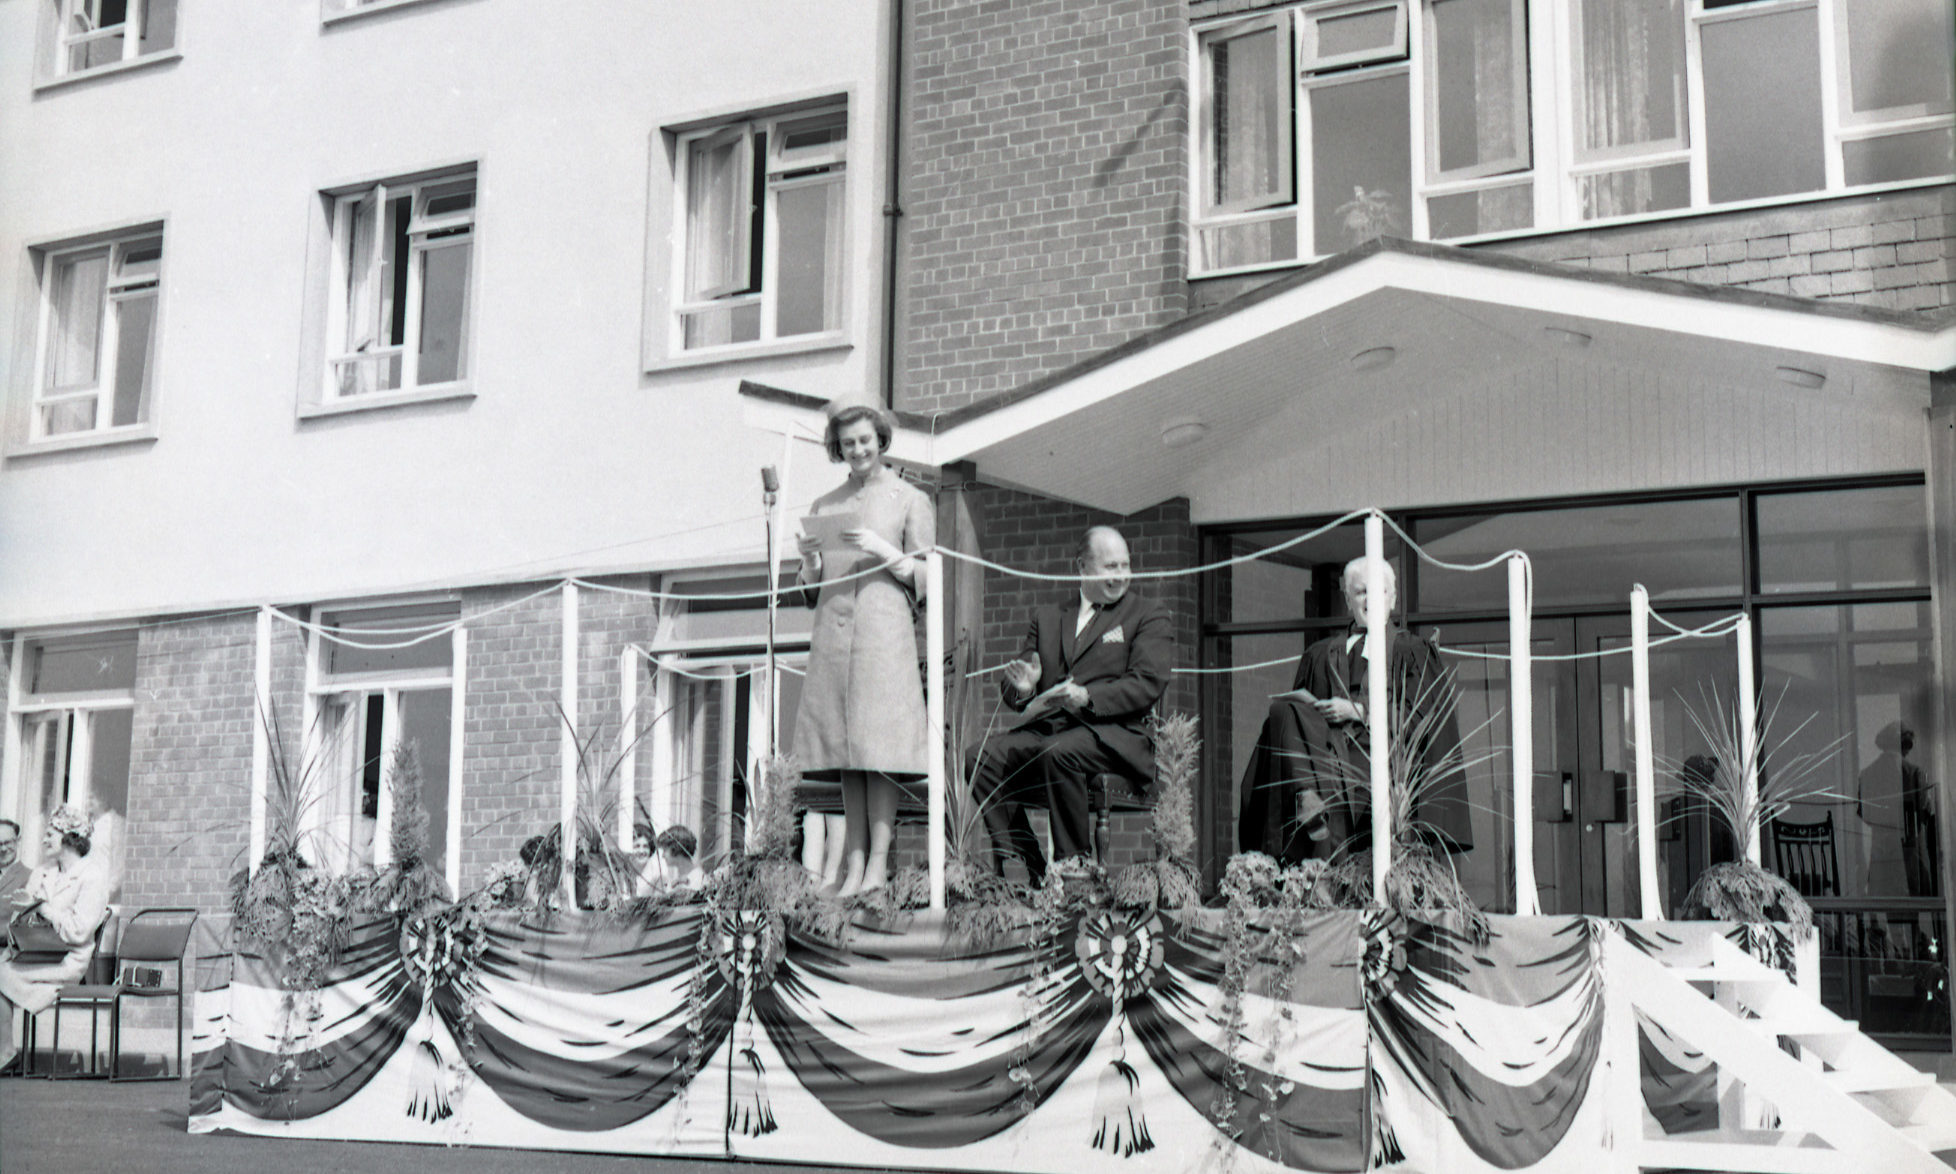 Princess Alexandra in 1965 at the opening of her eponymous house, the Guide Dog Centre in Forfar